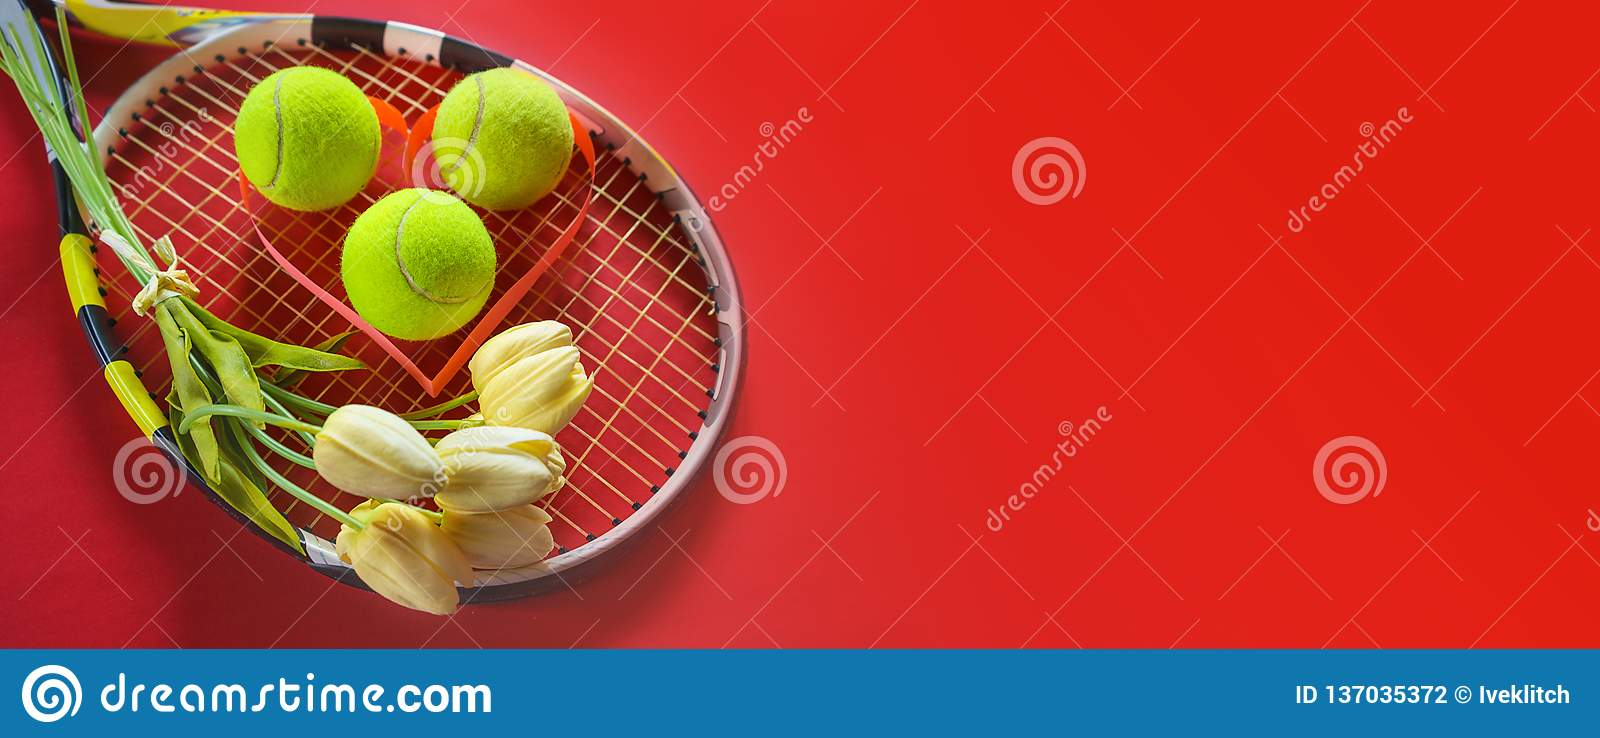 Tennis Love Layout On Red Background With Tennis Racket Balls With Bouquet  White Tulips Flowers. International Women`s Day March Stock Photo - Image  of ball, object: 137035372